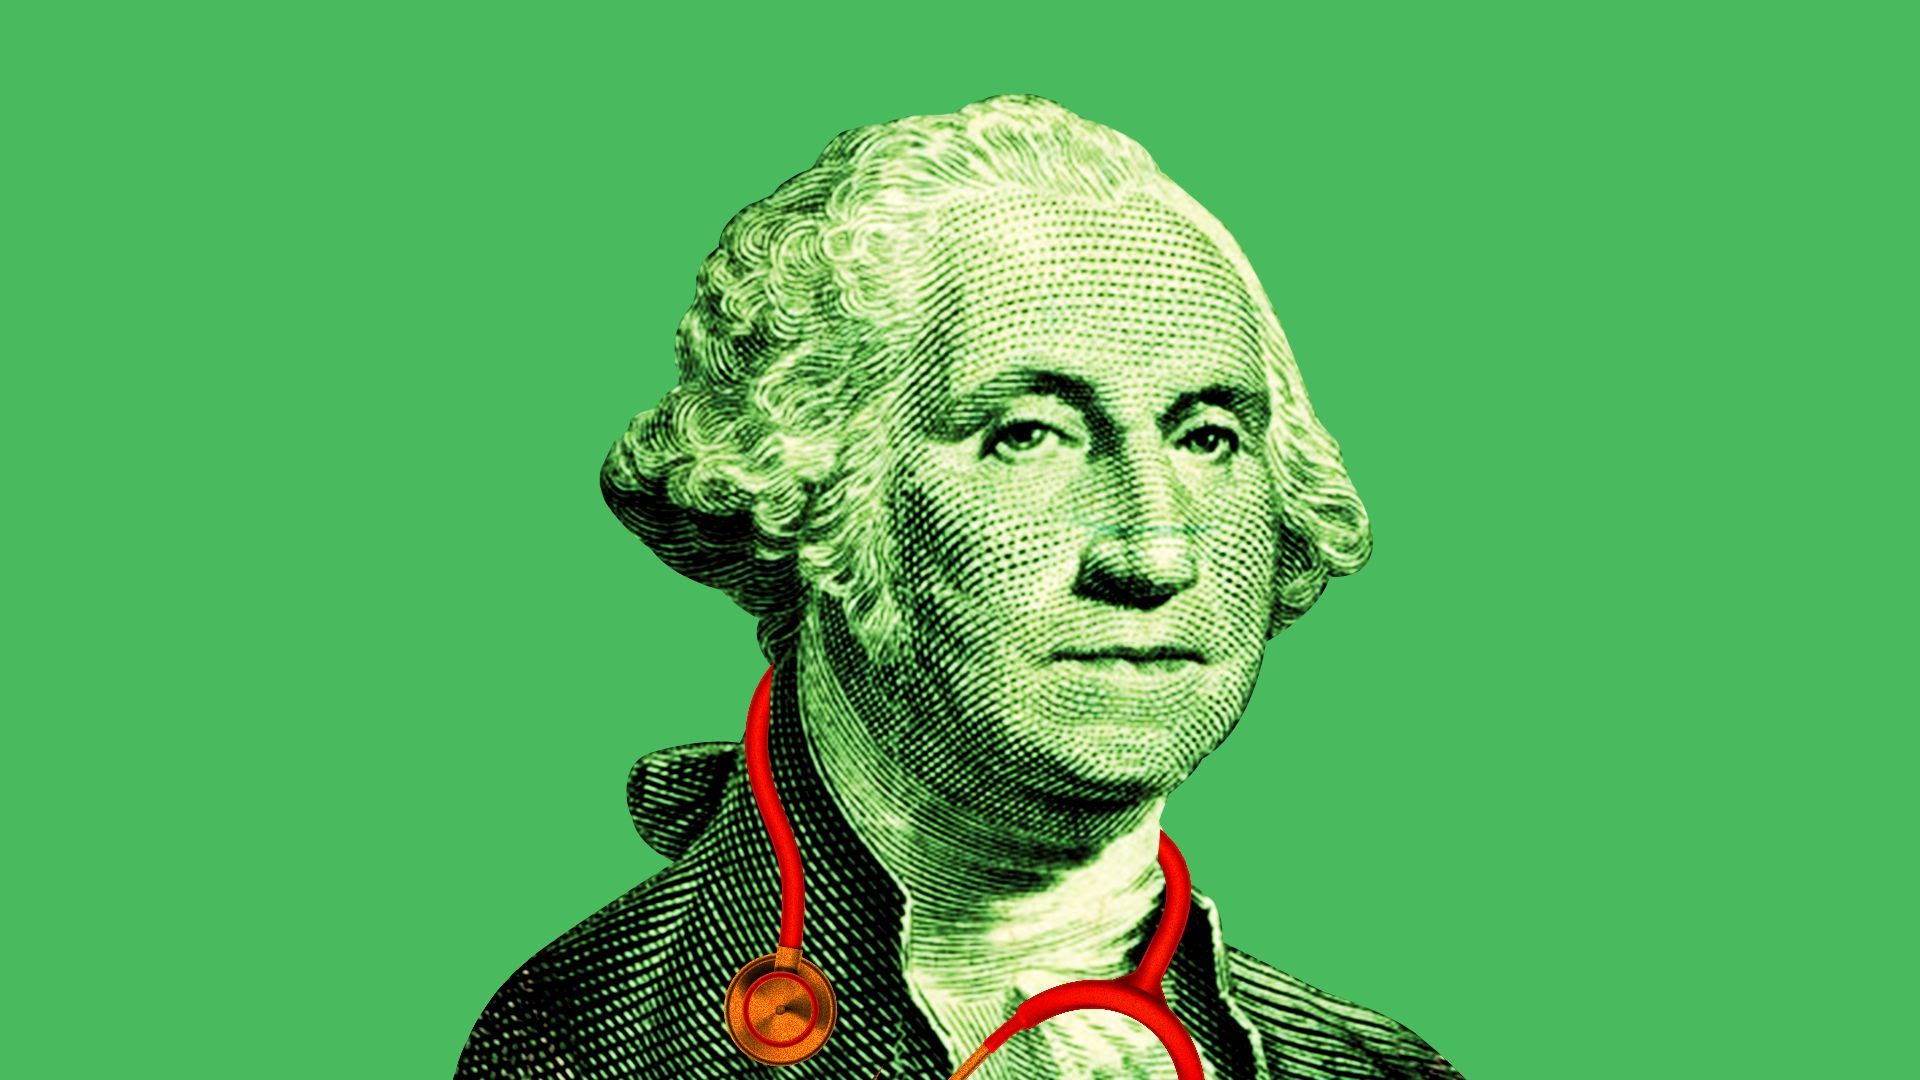 Dollar bill version of George Washington with a stethoscope around his neck